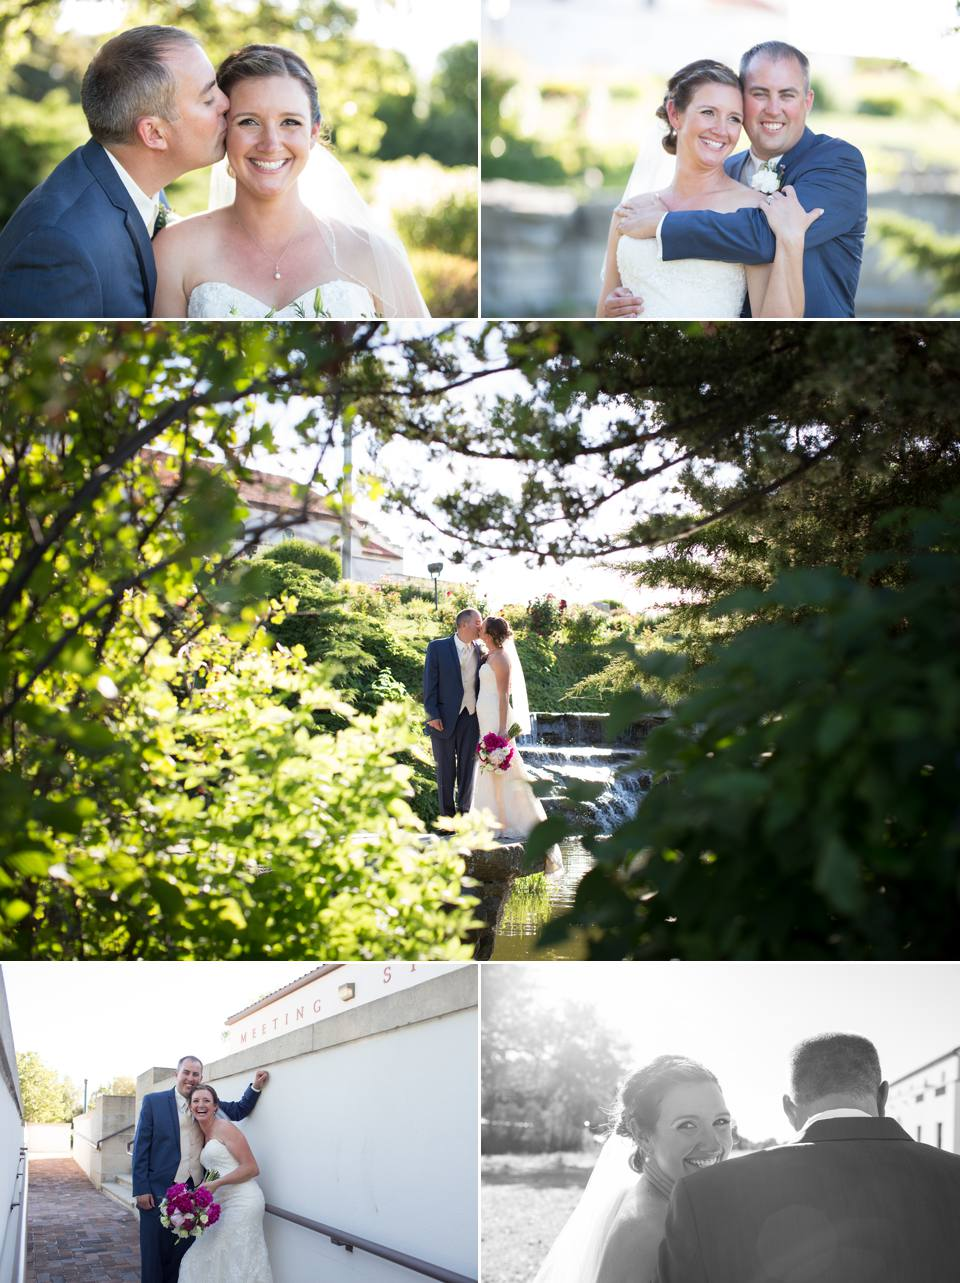 linsey and trev wedding blog 8